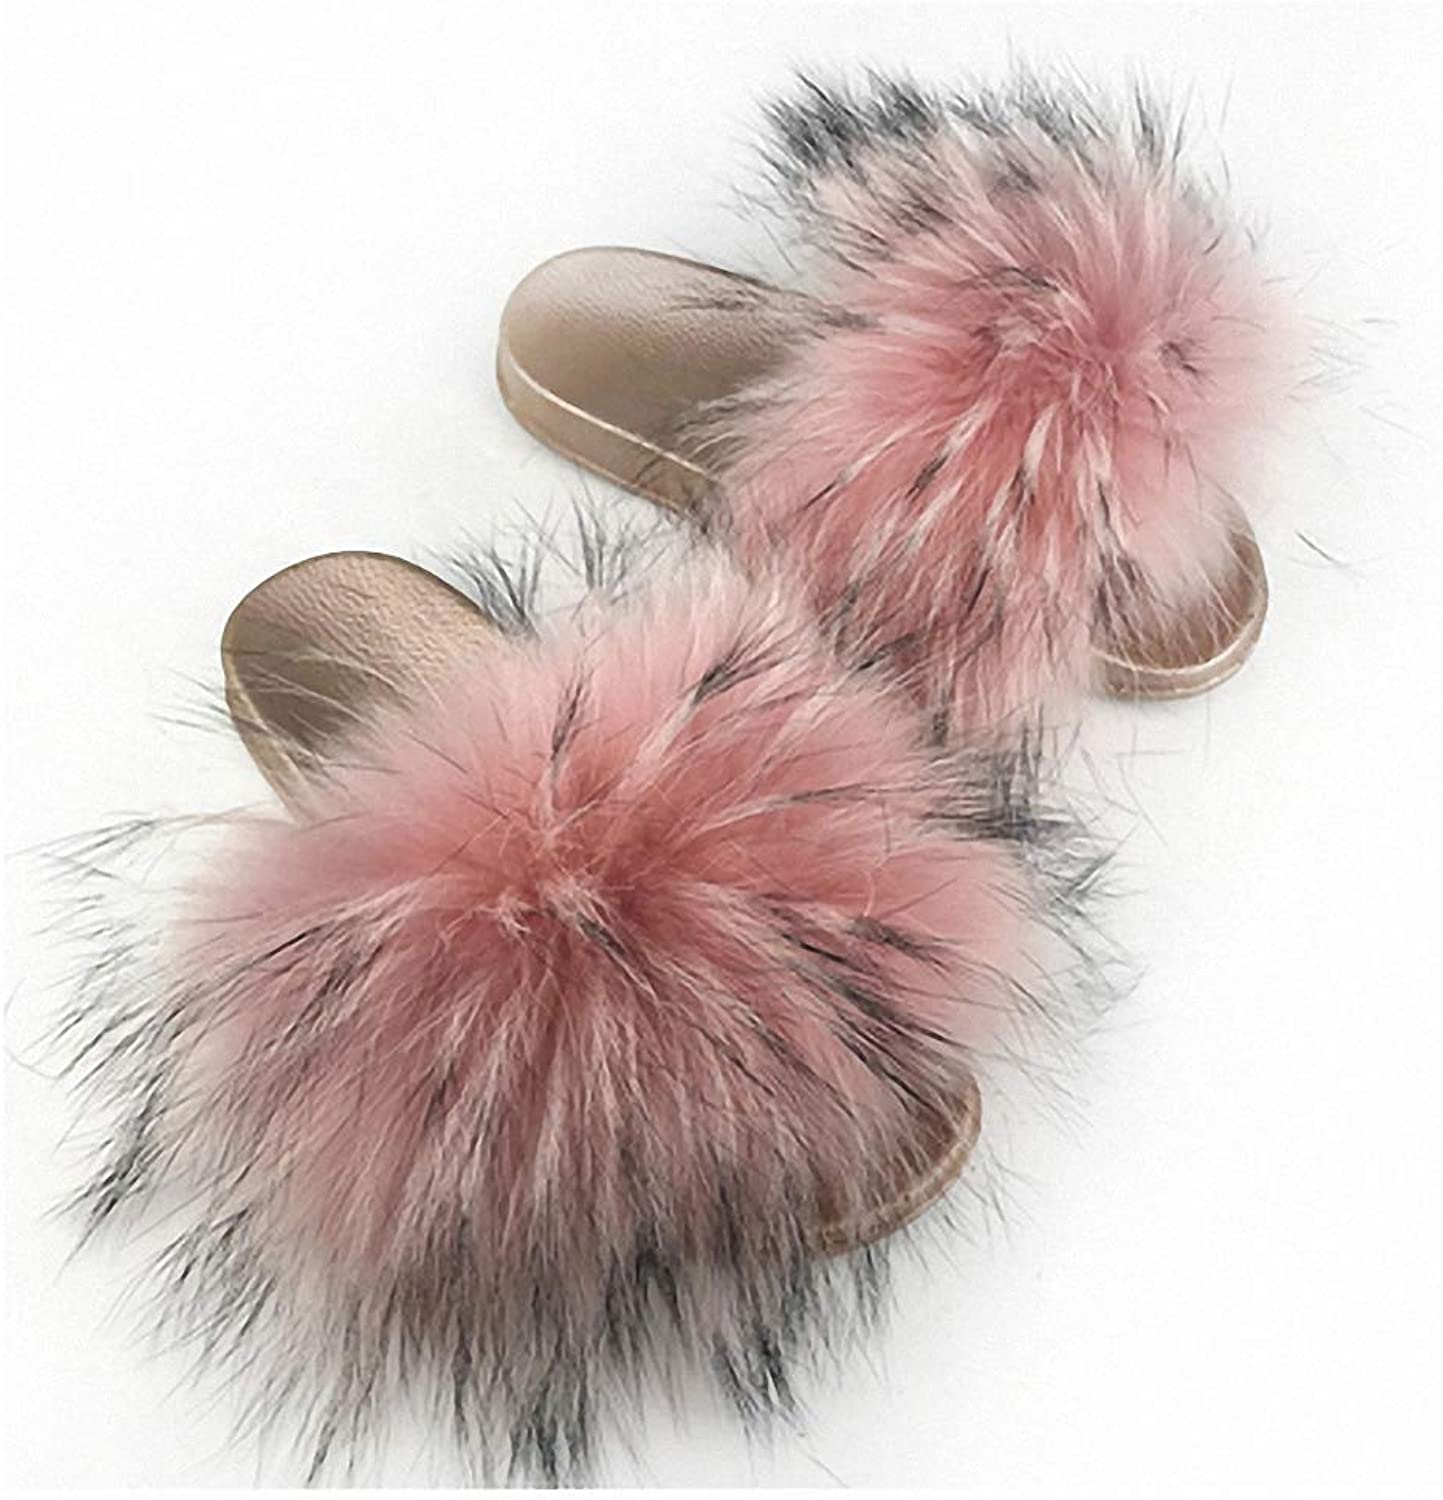 Womens Slippers Fur Slippers Winter Autumn Open Toe Fur Slides Beach shoes Mixed colors Women Furry Slippers Home shoes